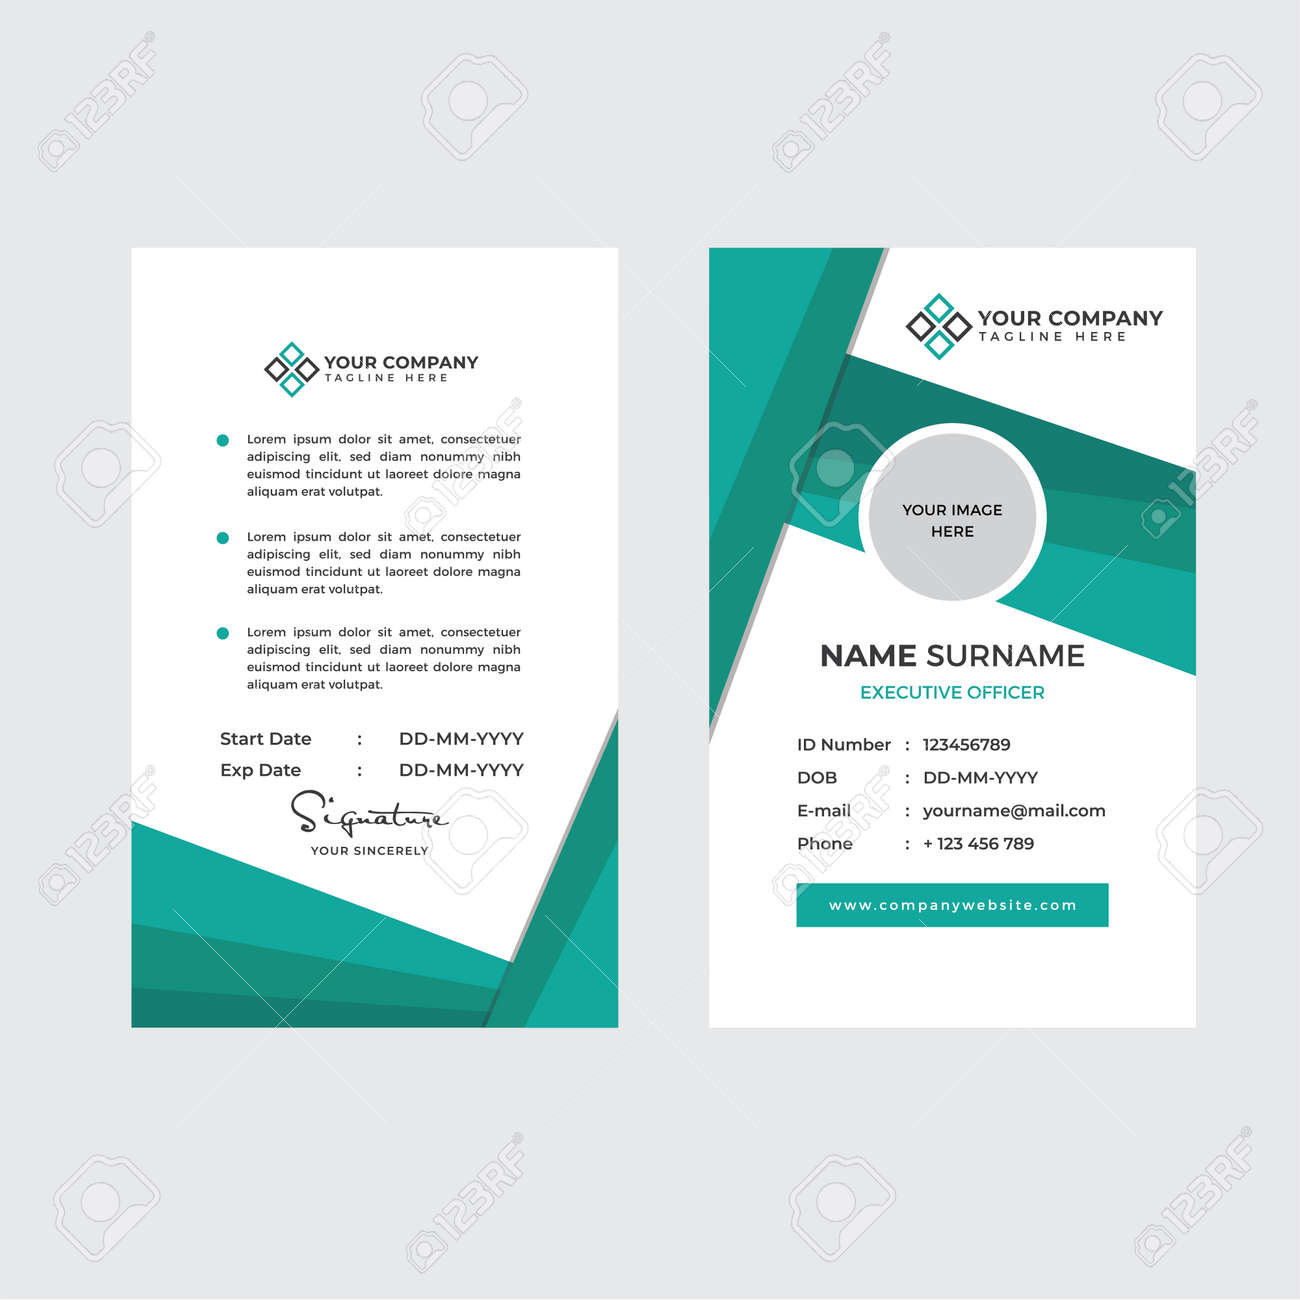 Premium Employee ID Card with Photo Placeholder, Name, Position and Company Profile Template Vector - 168723846